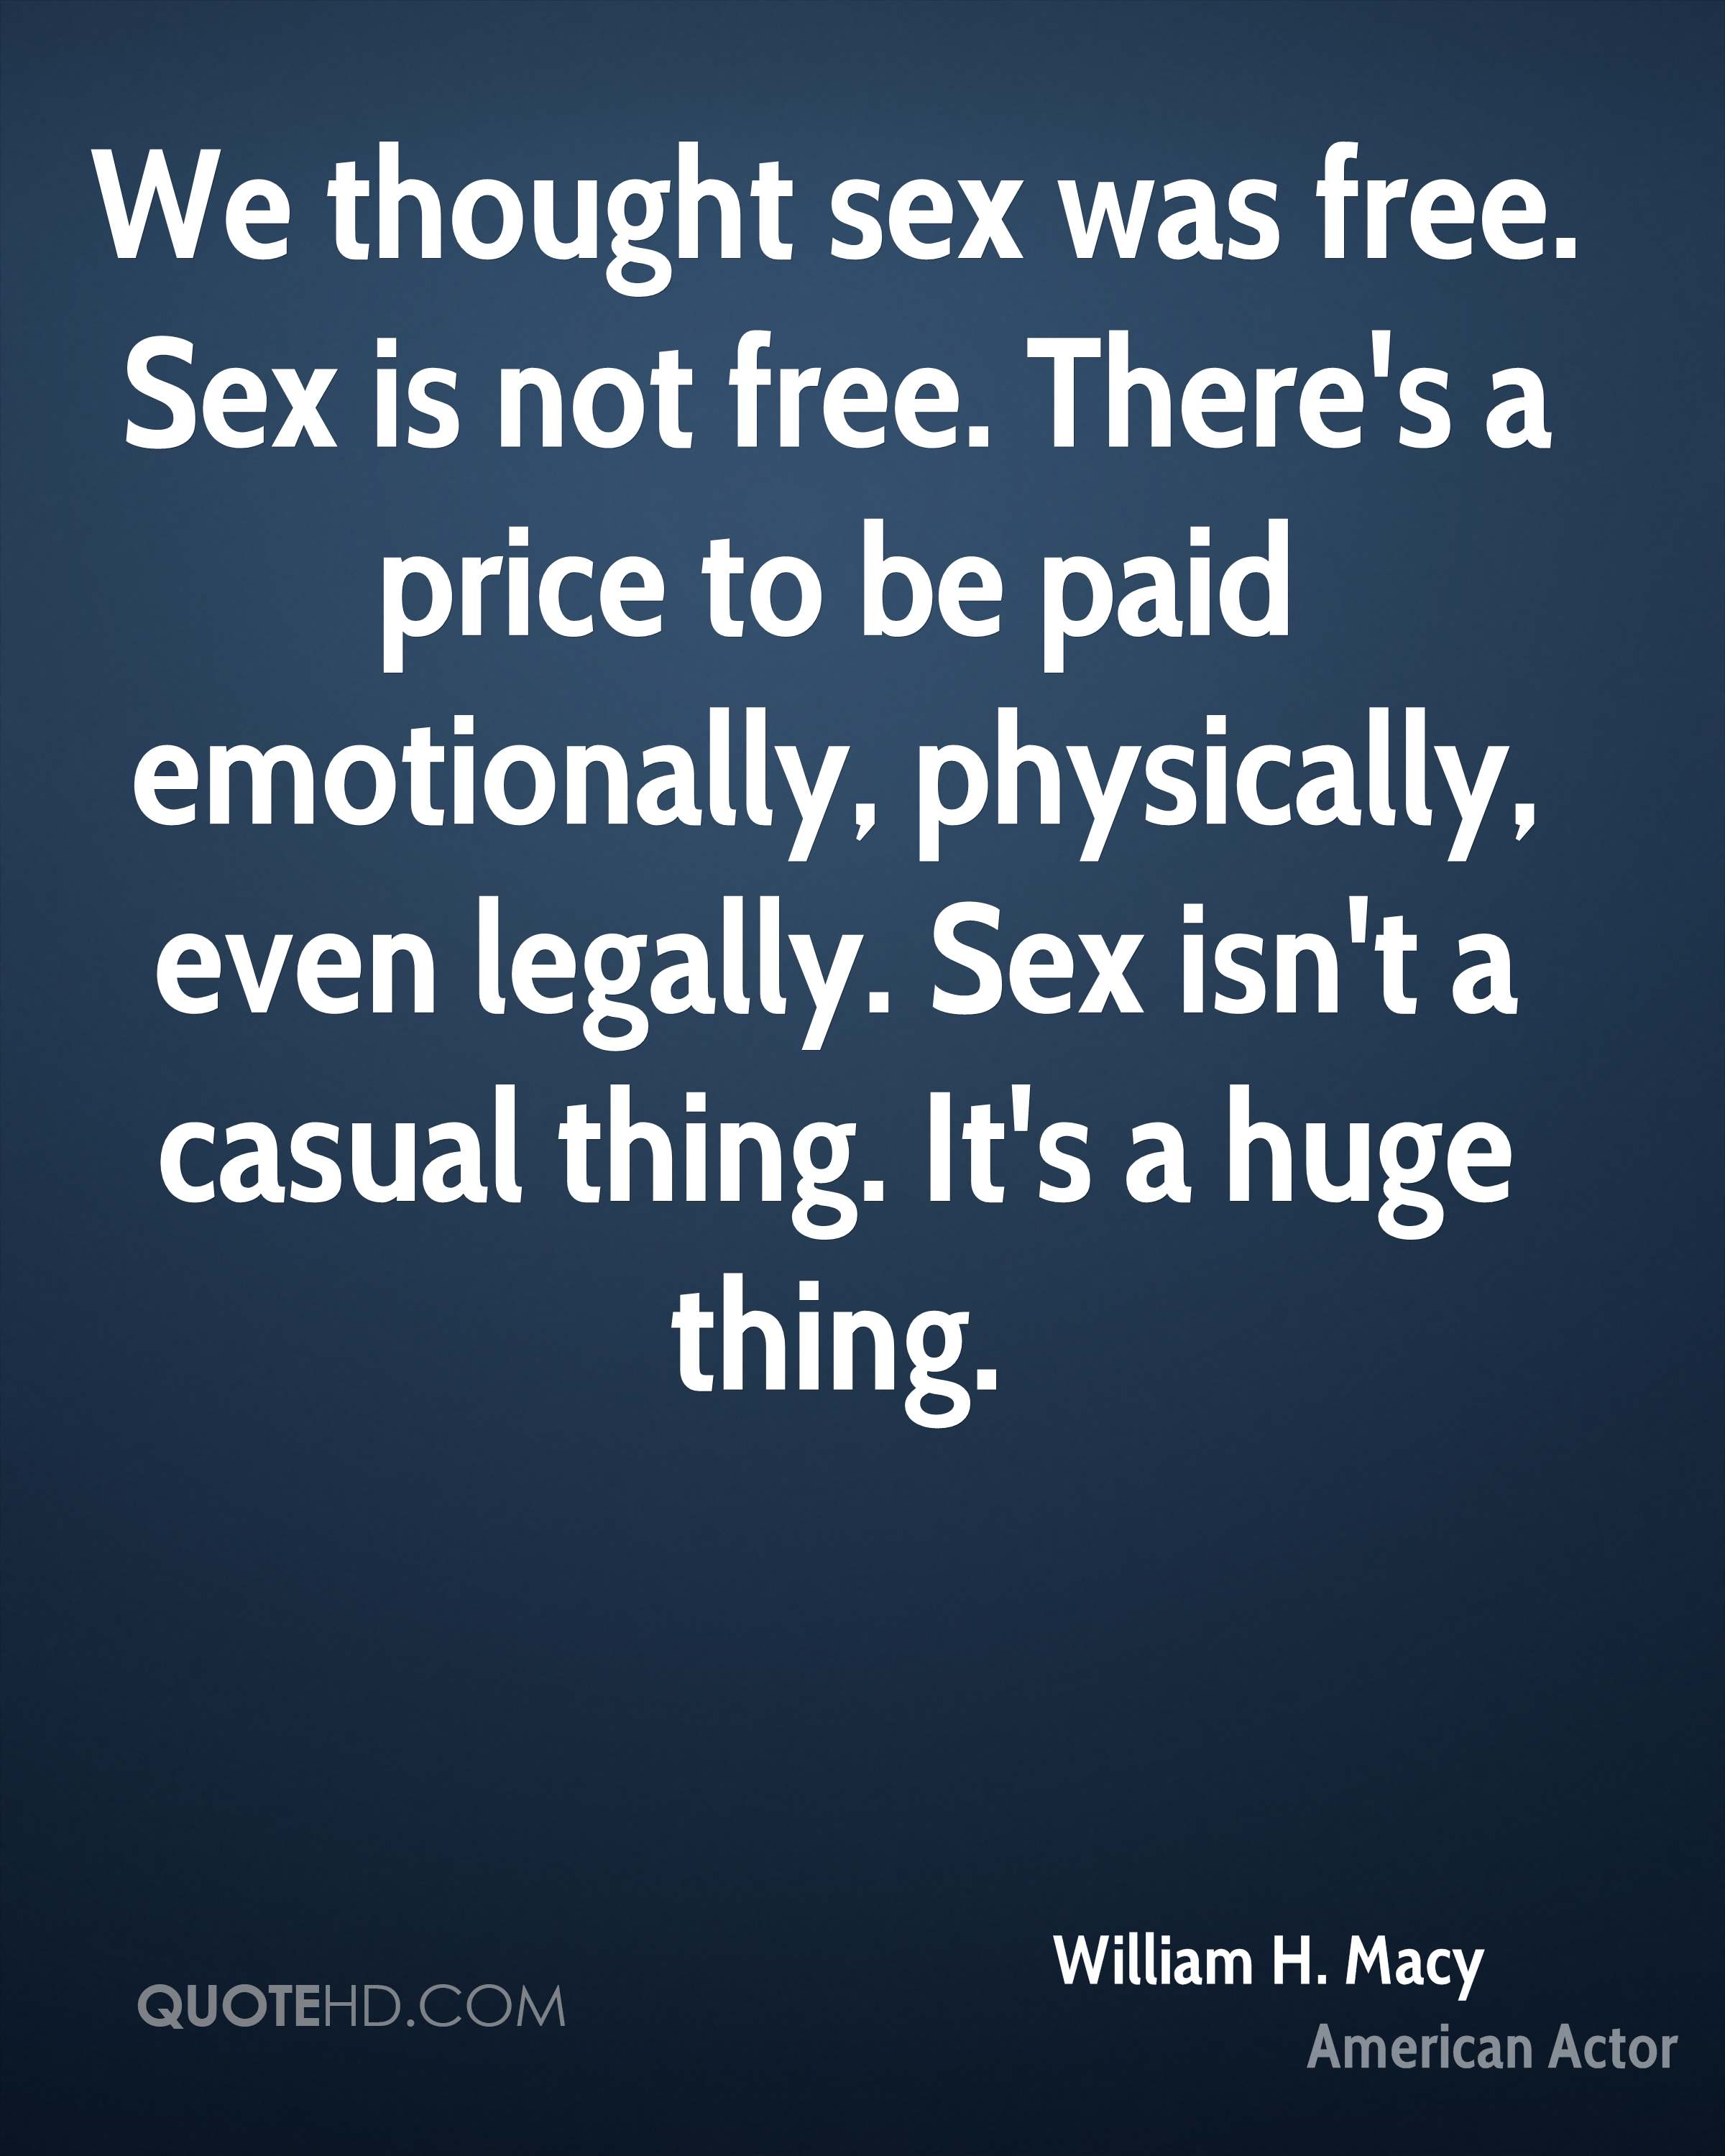 We thought sex was free. Sex is not free. There's a price to be paid emotionally, physically, even legally. Sex isn't a casual thing. It's a huge thing.